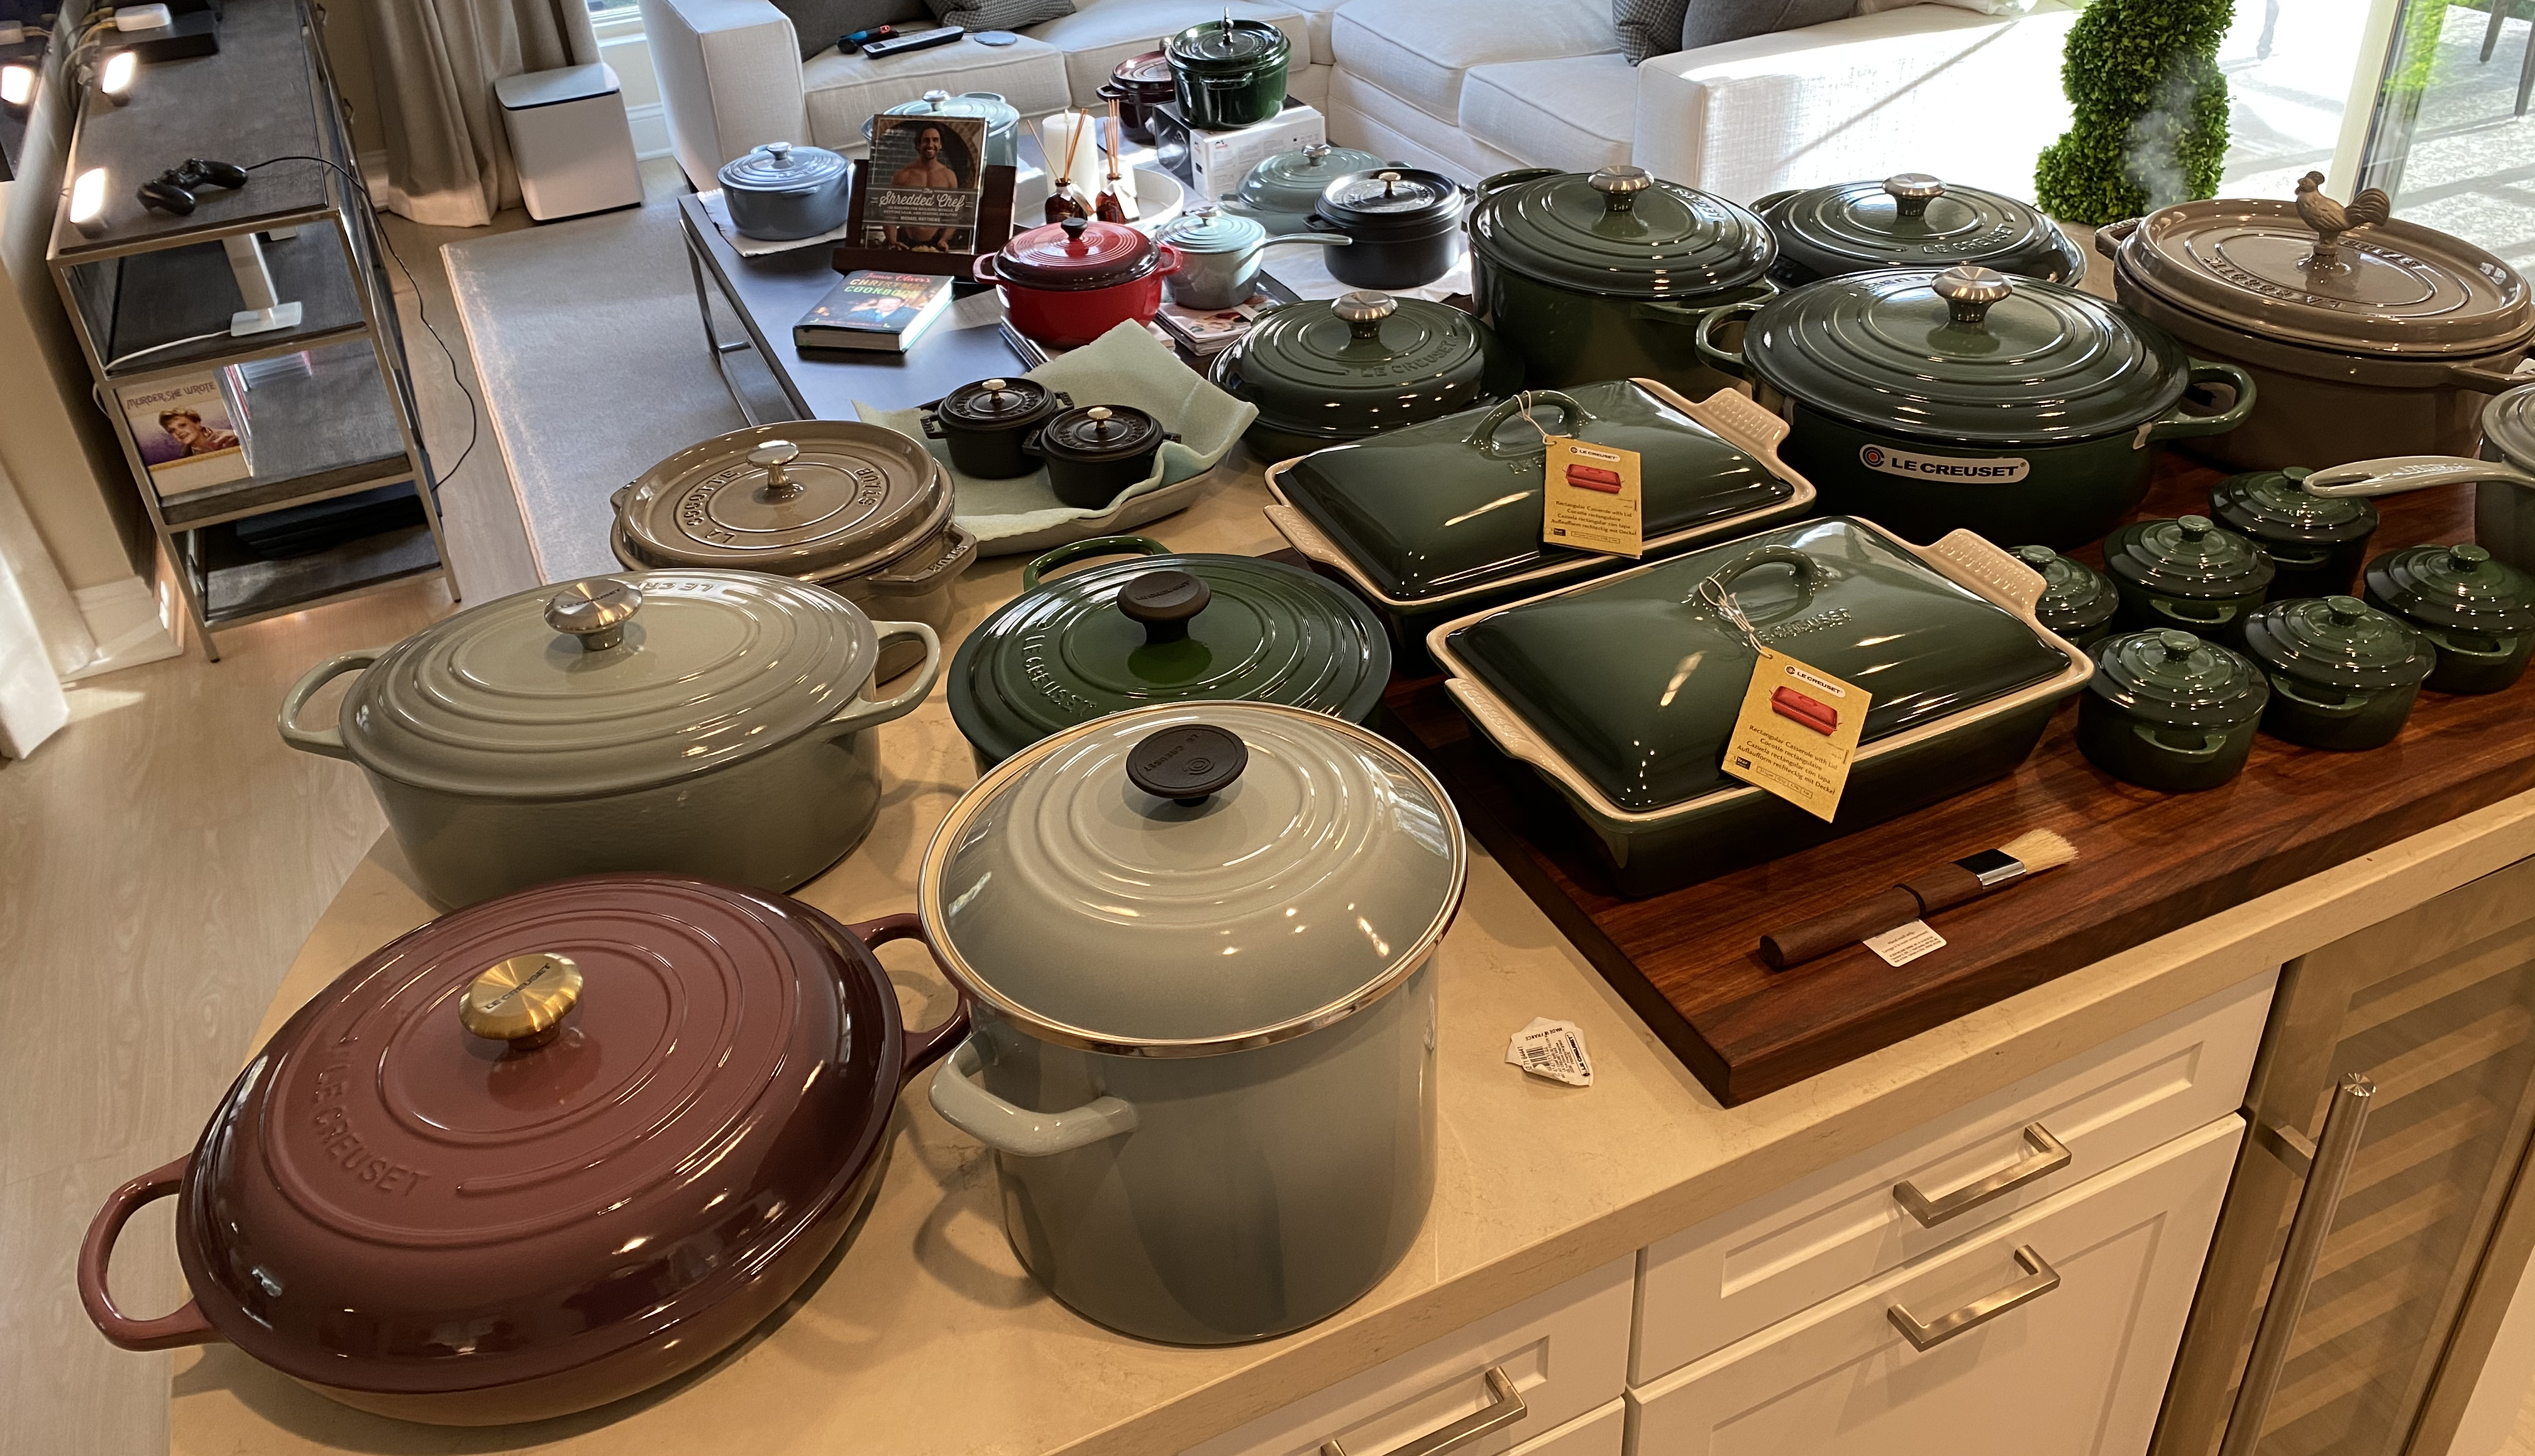 Le Creuset Inventory and Organization Project I